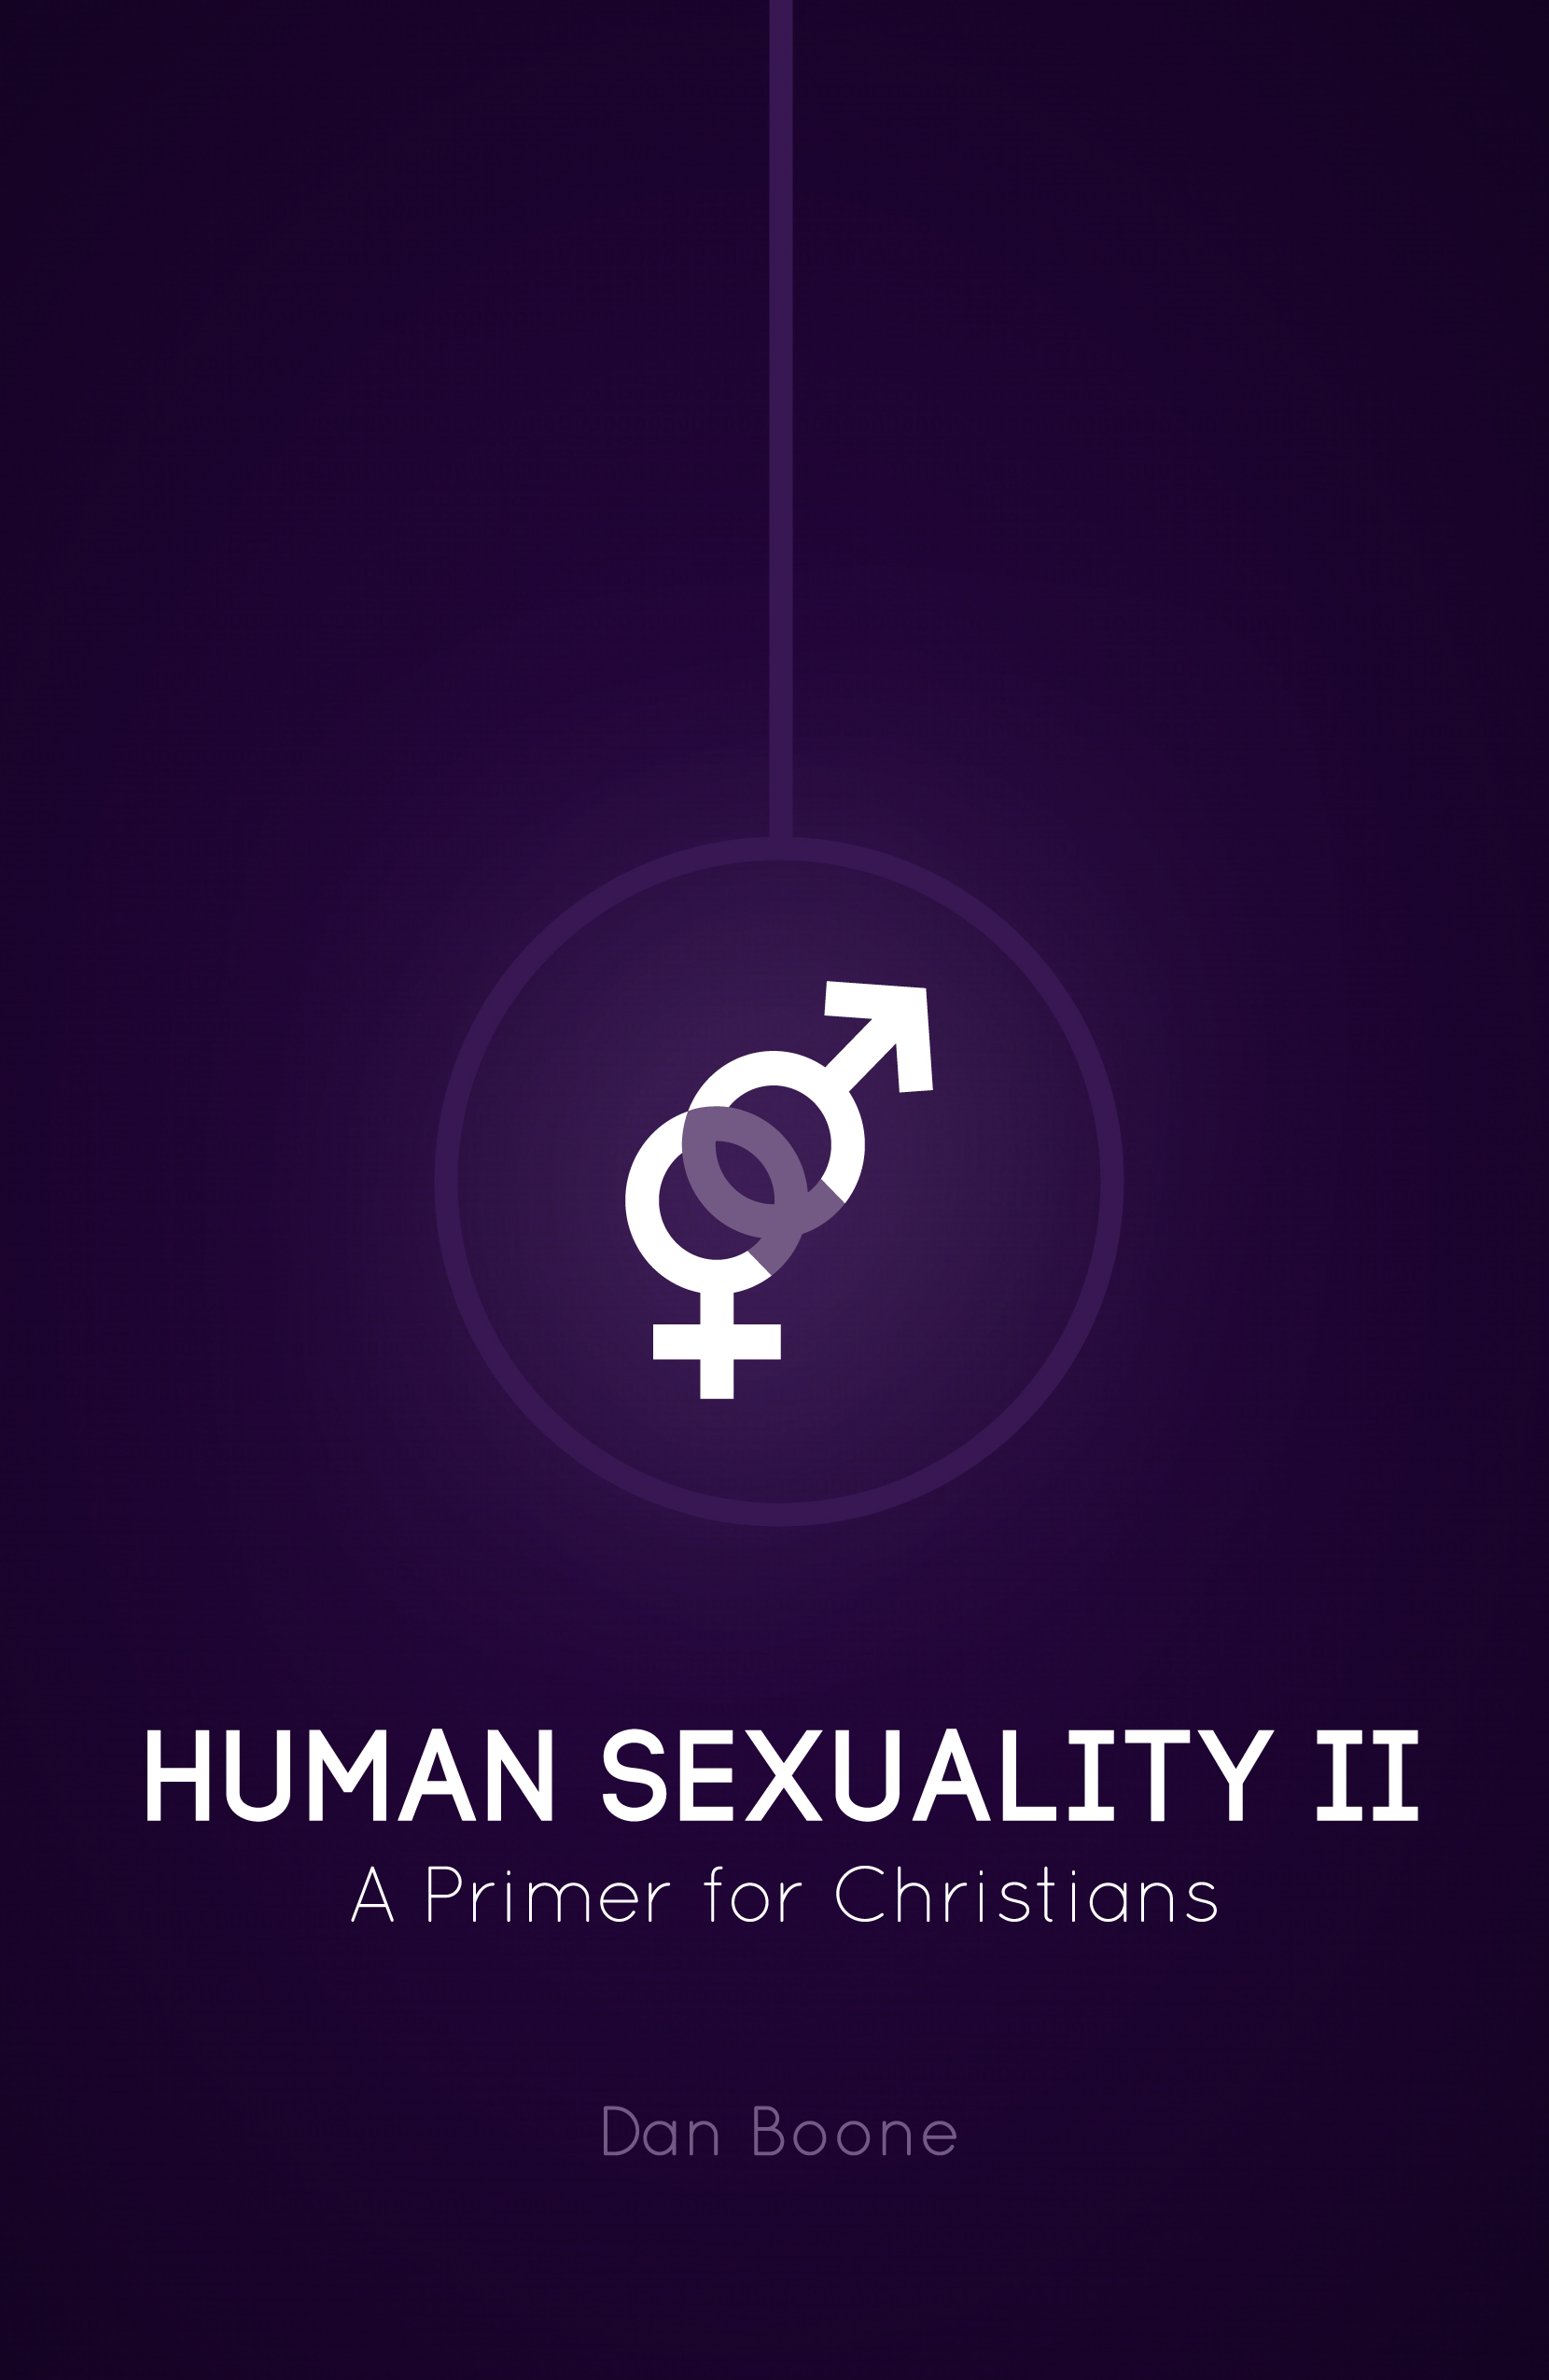 A new, updated edition of Human Sexuality: A Primer for Christians, is available with fresh content.